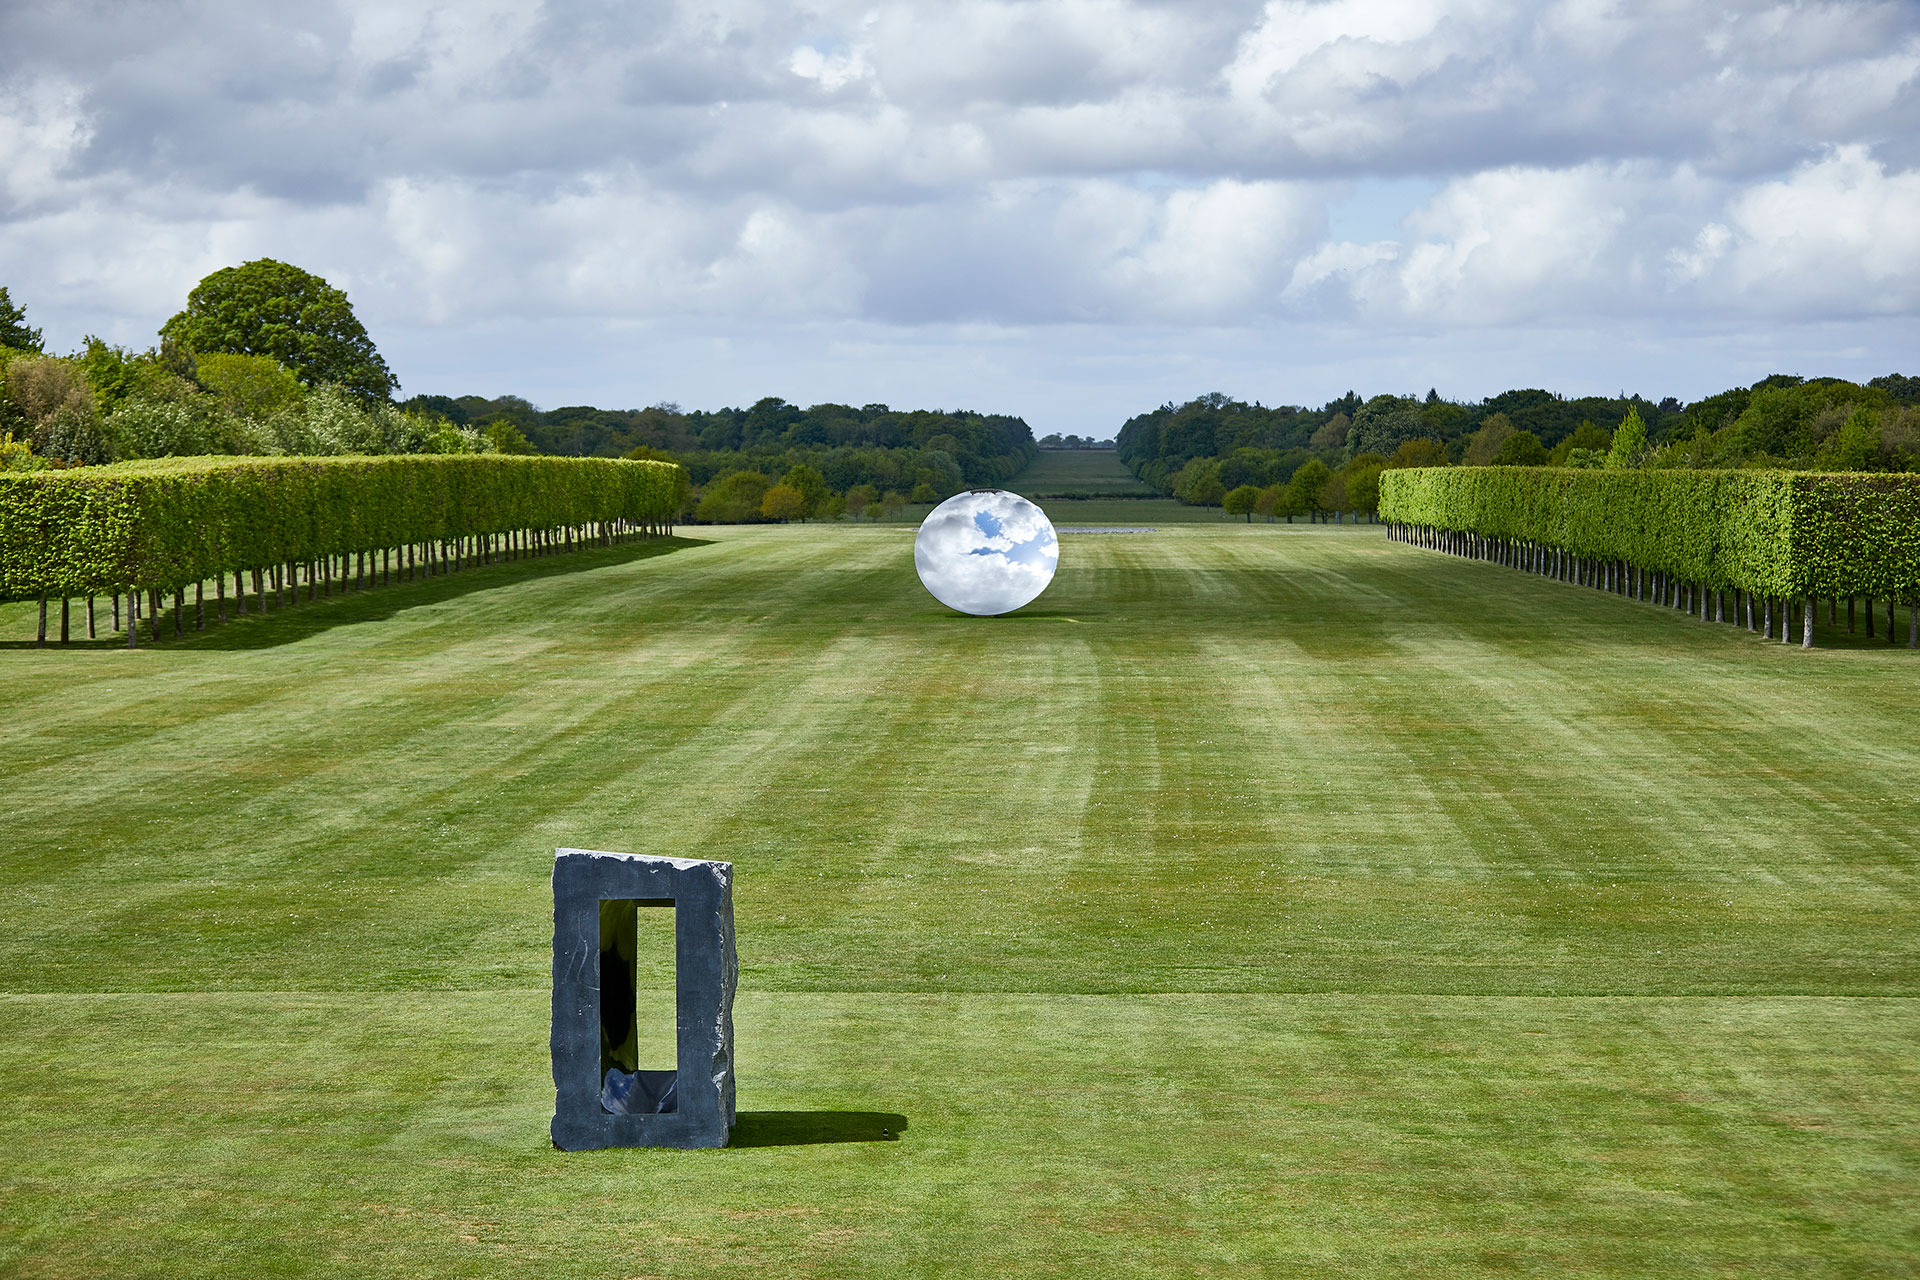 Exhibition view, Anish Kapoor at Houghton Hall. © Anish Kapoor. All rights reserved DACS, 2020. Photo by Pete Huggins. Featured: Sky Mirror, 2018, stainless steel. Courtesy the artist and Lisson Gallery. Untitled, 1997, Kilkenny limestone. Courtesy the artist.